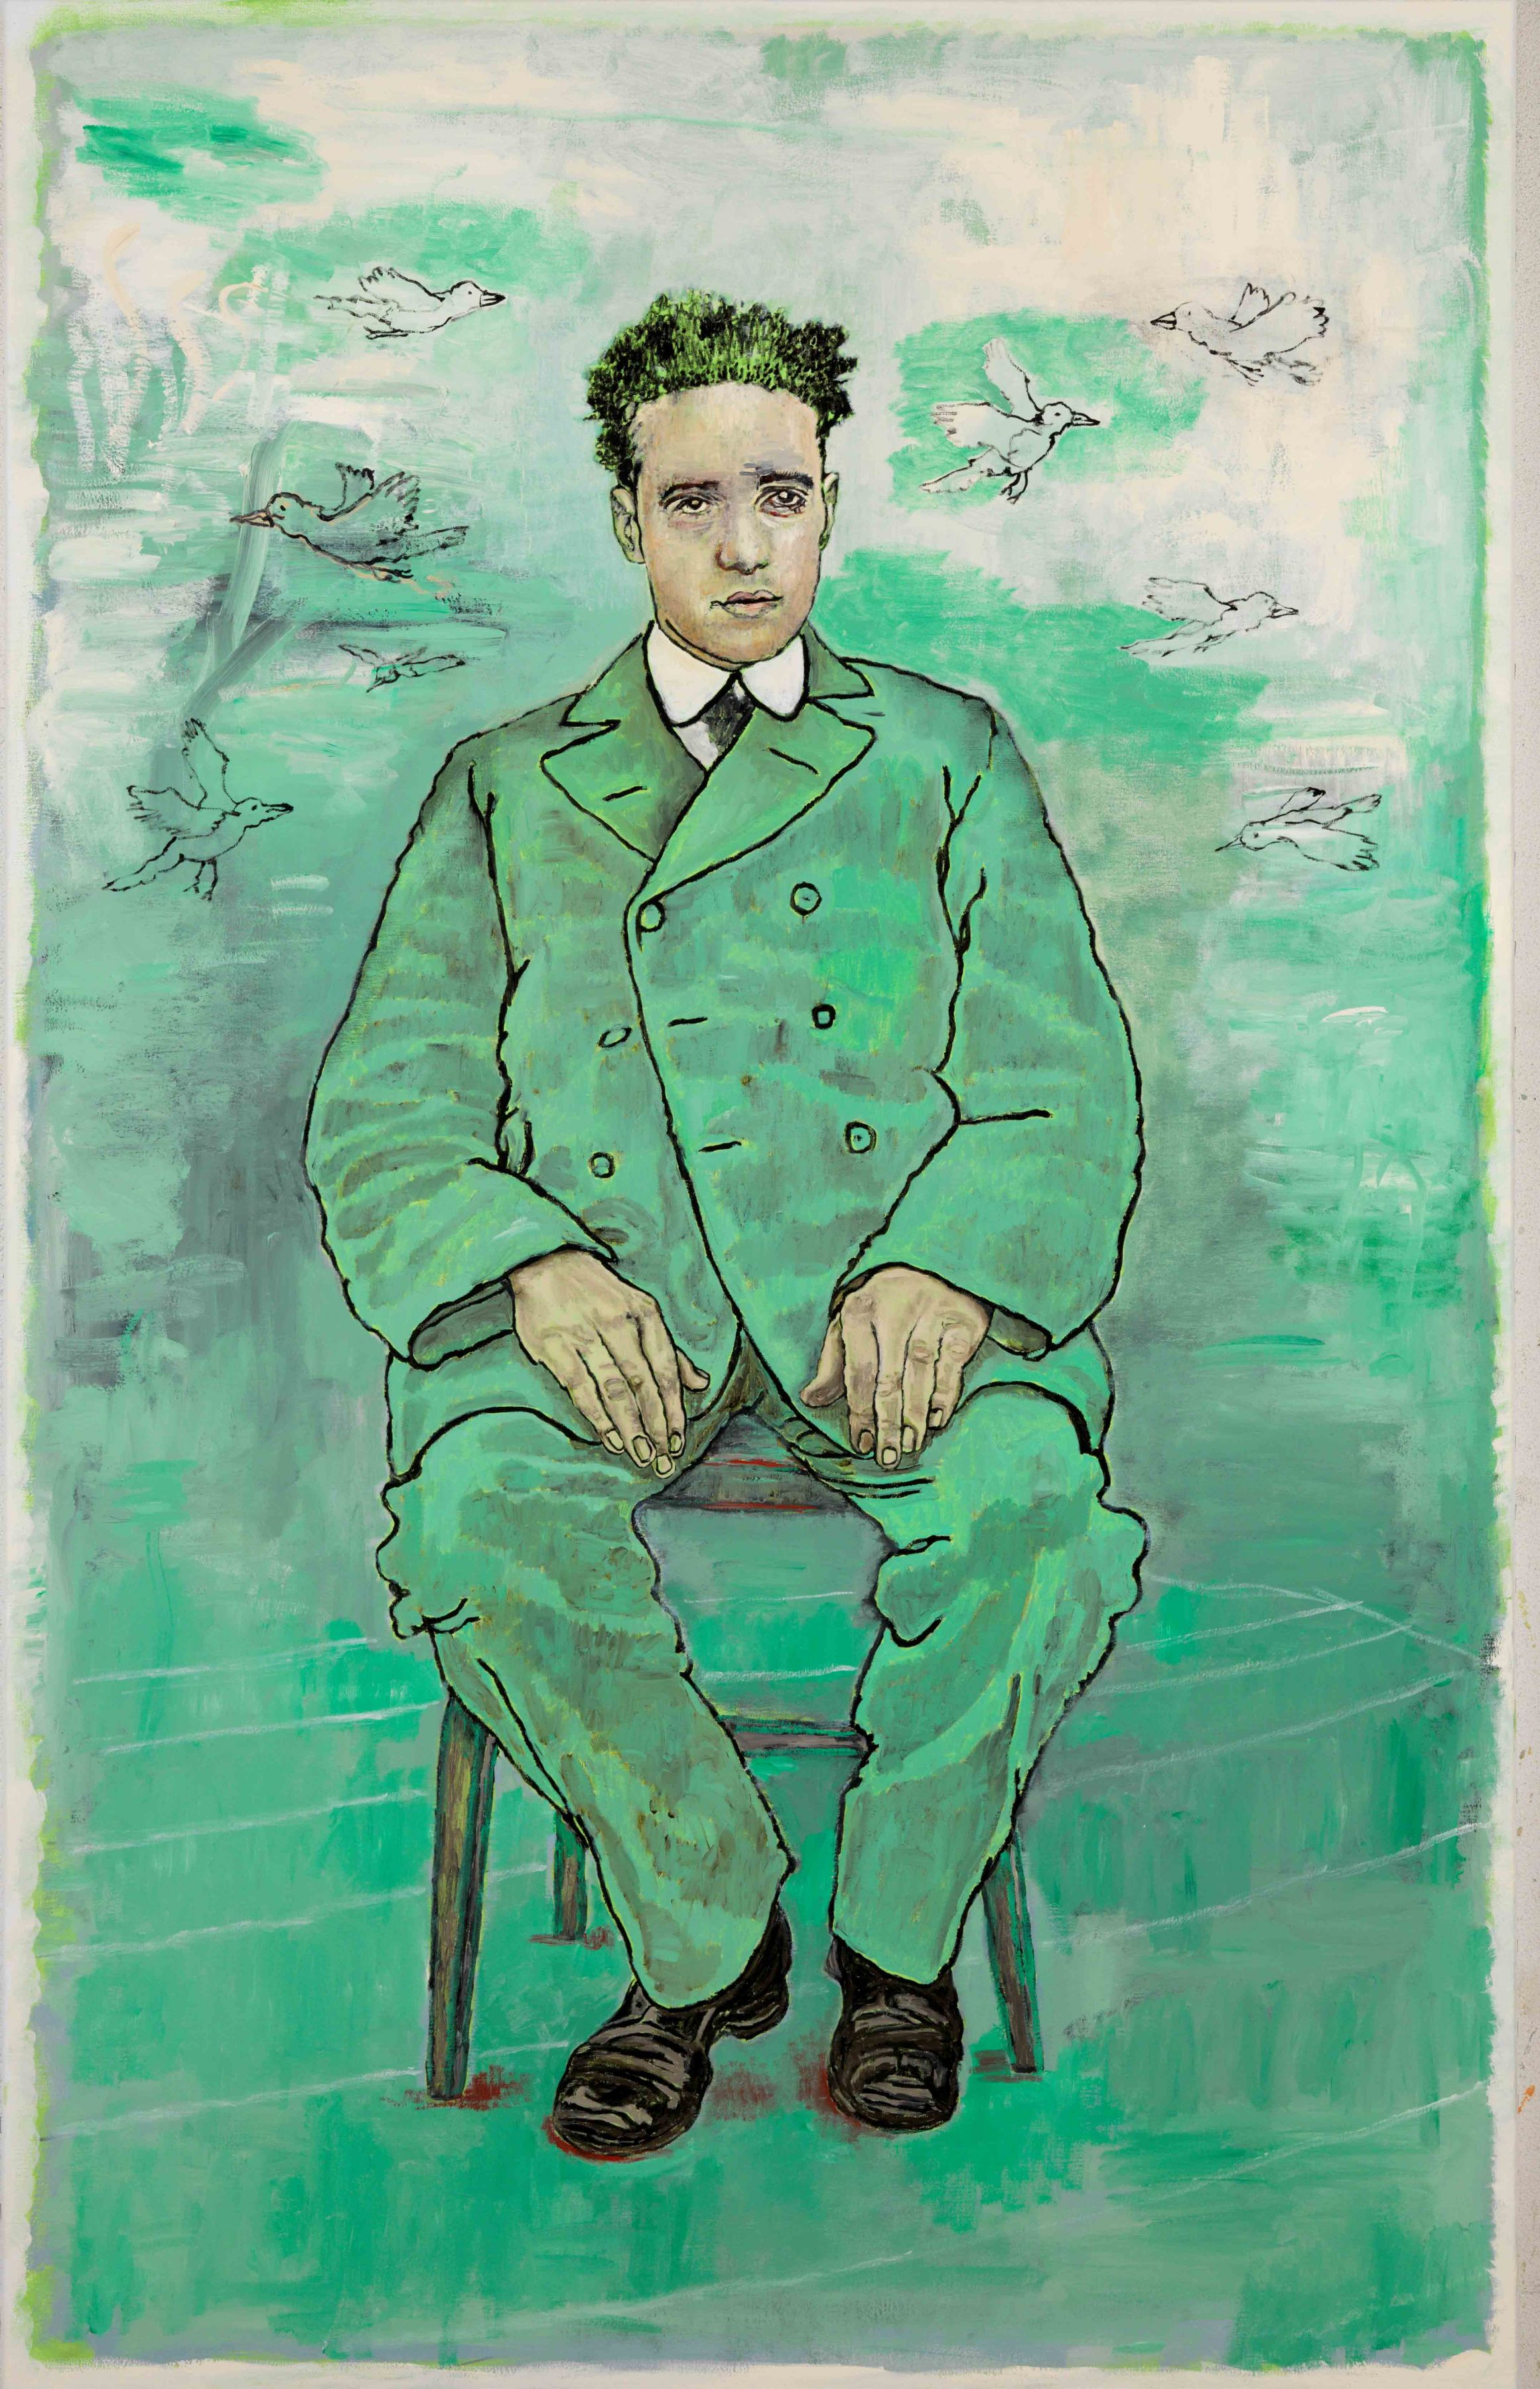 a contemporary painting of a seated man in a green suit with green hair by artist Hannah van Bart